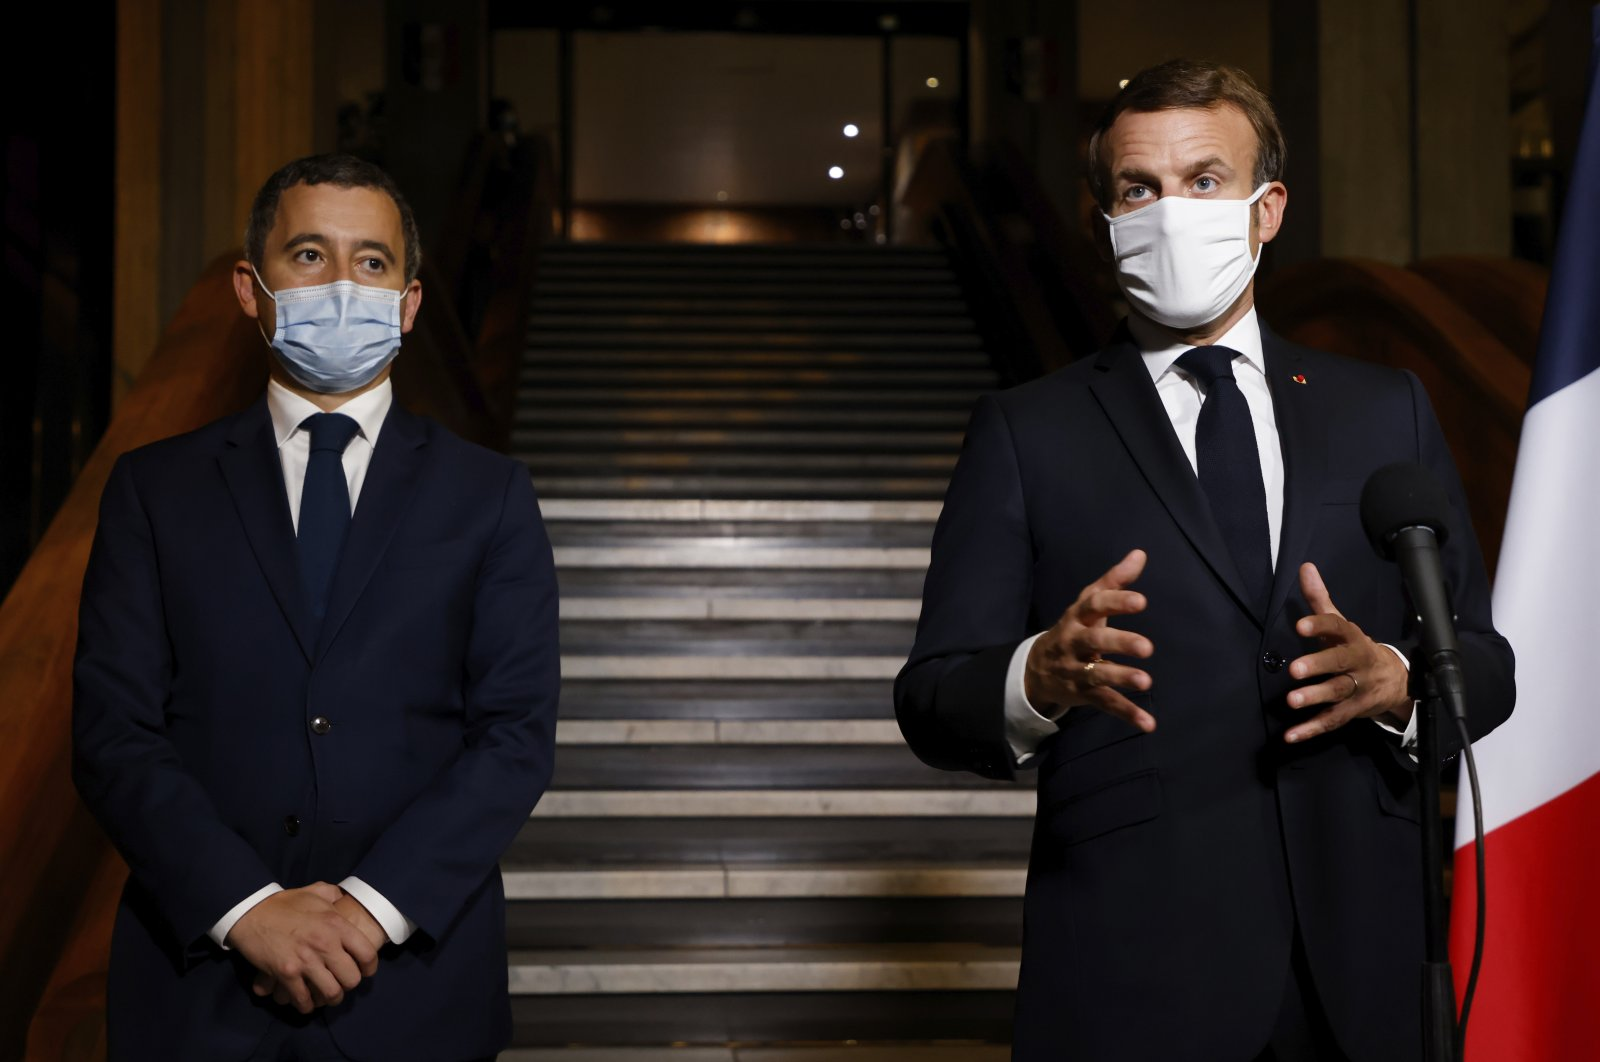 French President Emmanuel Macron (R) delivers a speech while Interior Minister Gerald Darmanin listens nearby, in Bobigny, a northeastern suburb of Paris, France, Oct. 20, 2020. (AP Photo)